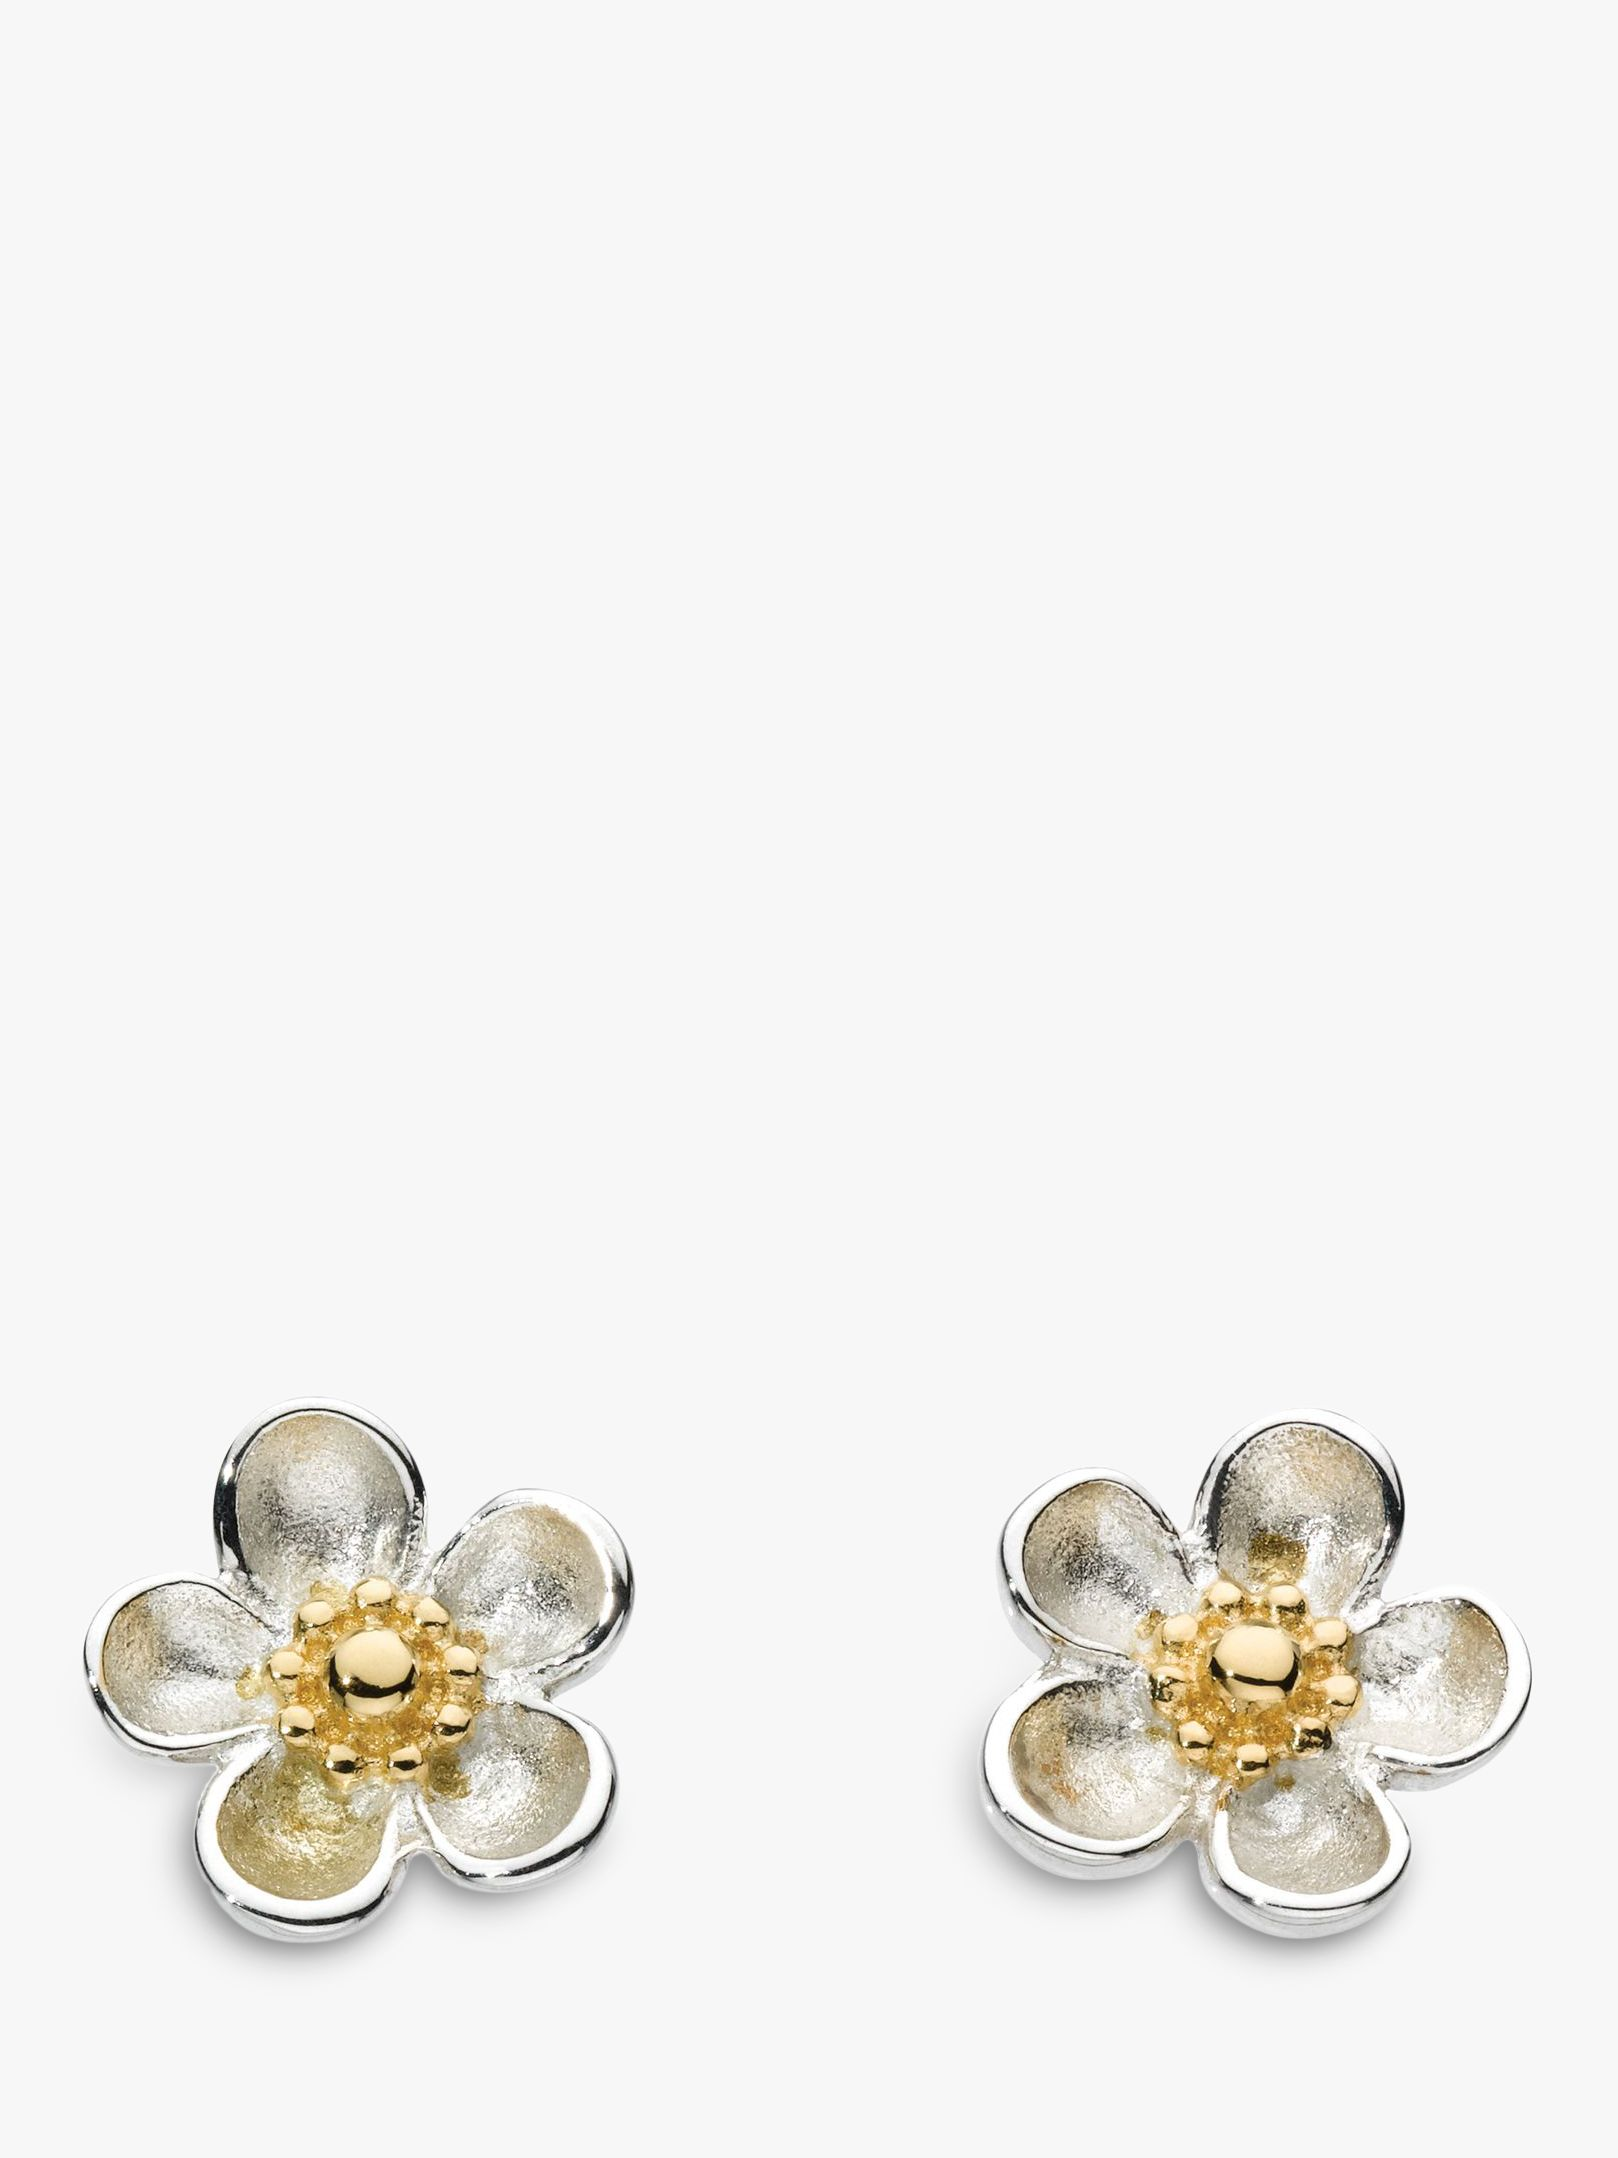 Kit Heath Kit Heath Budding Blossom Sterling Silver Stud Earrings, Silver / Gold